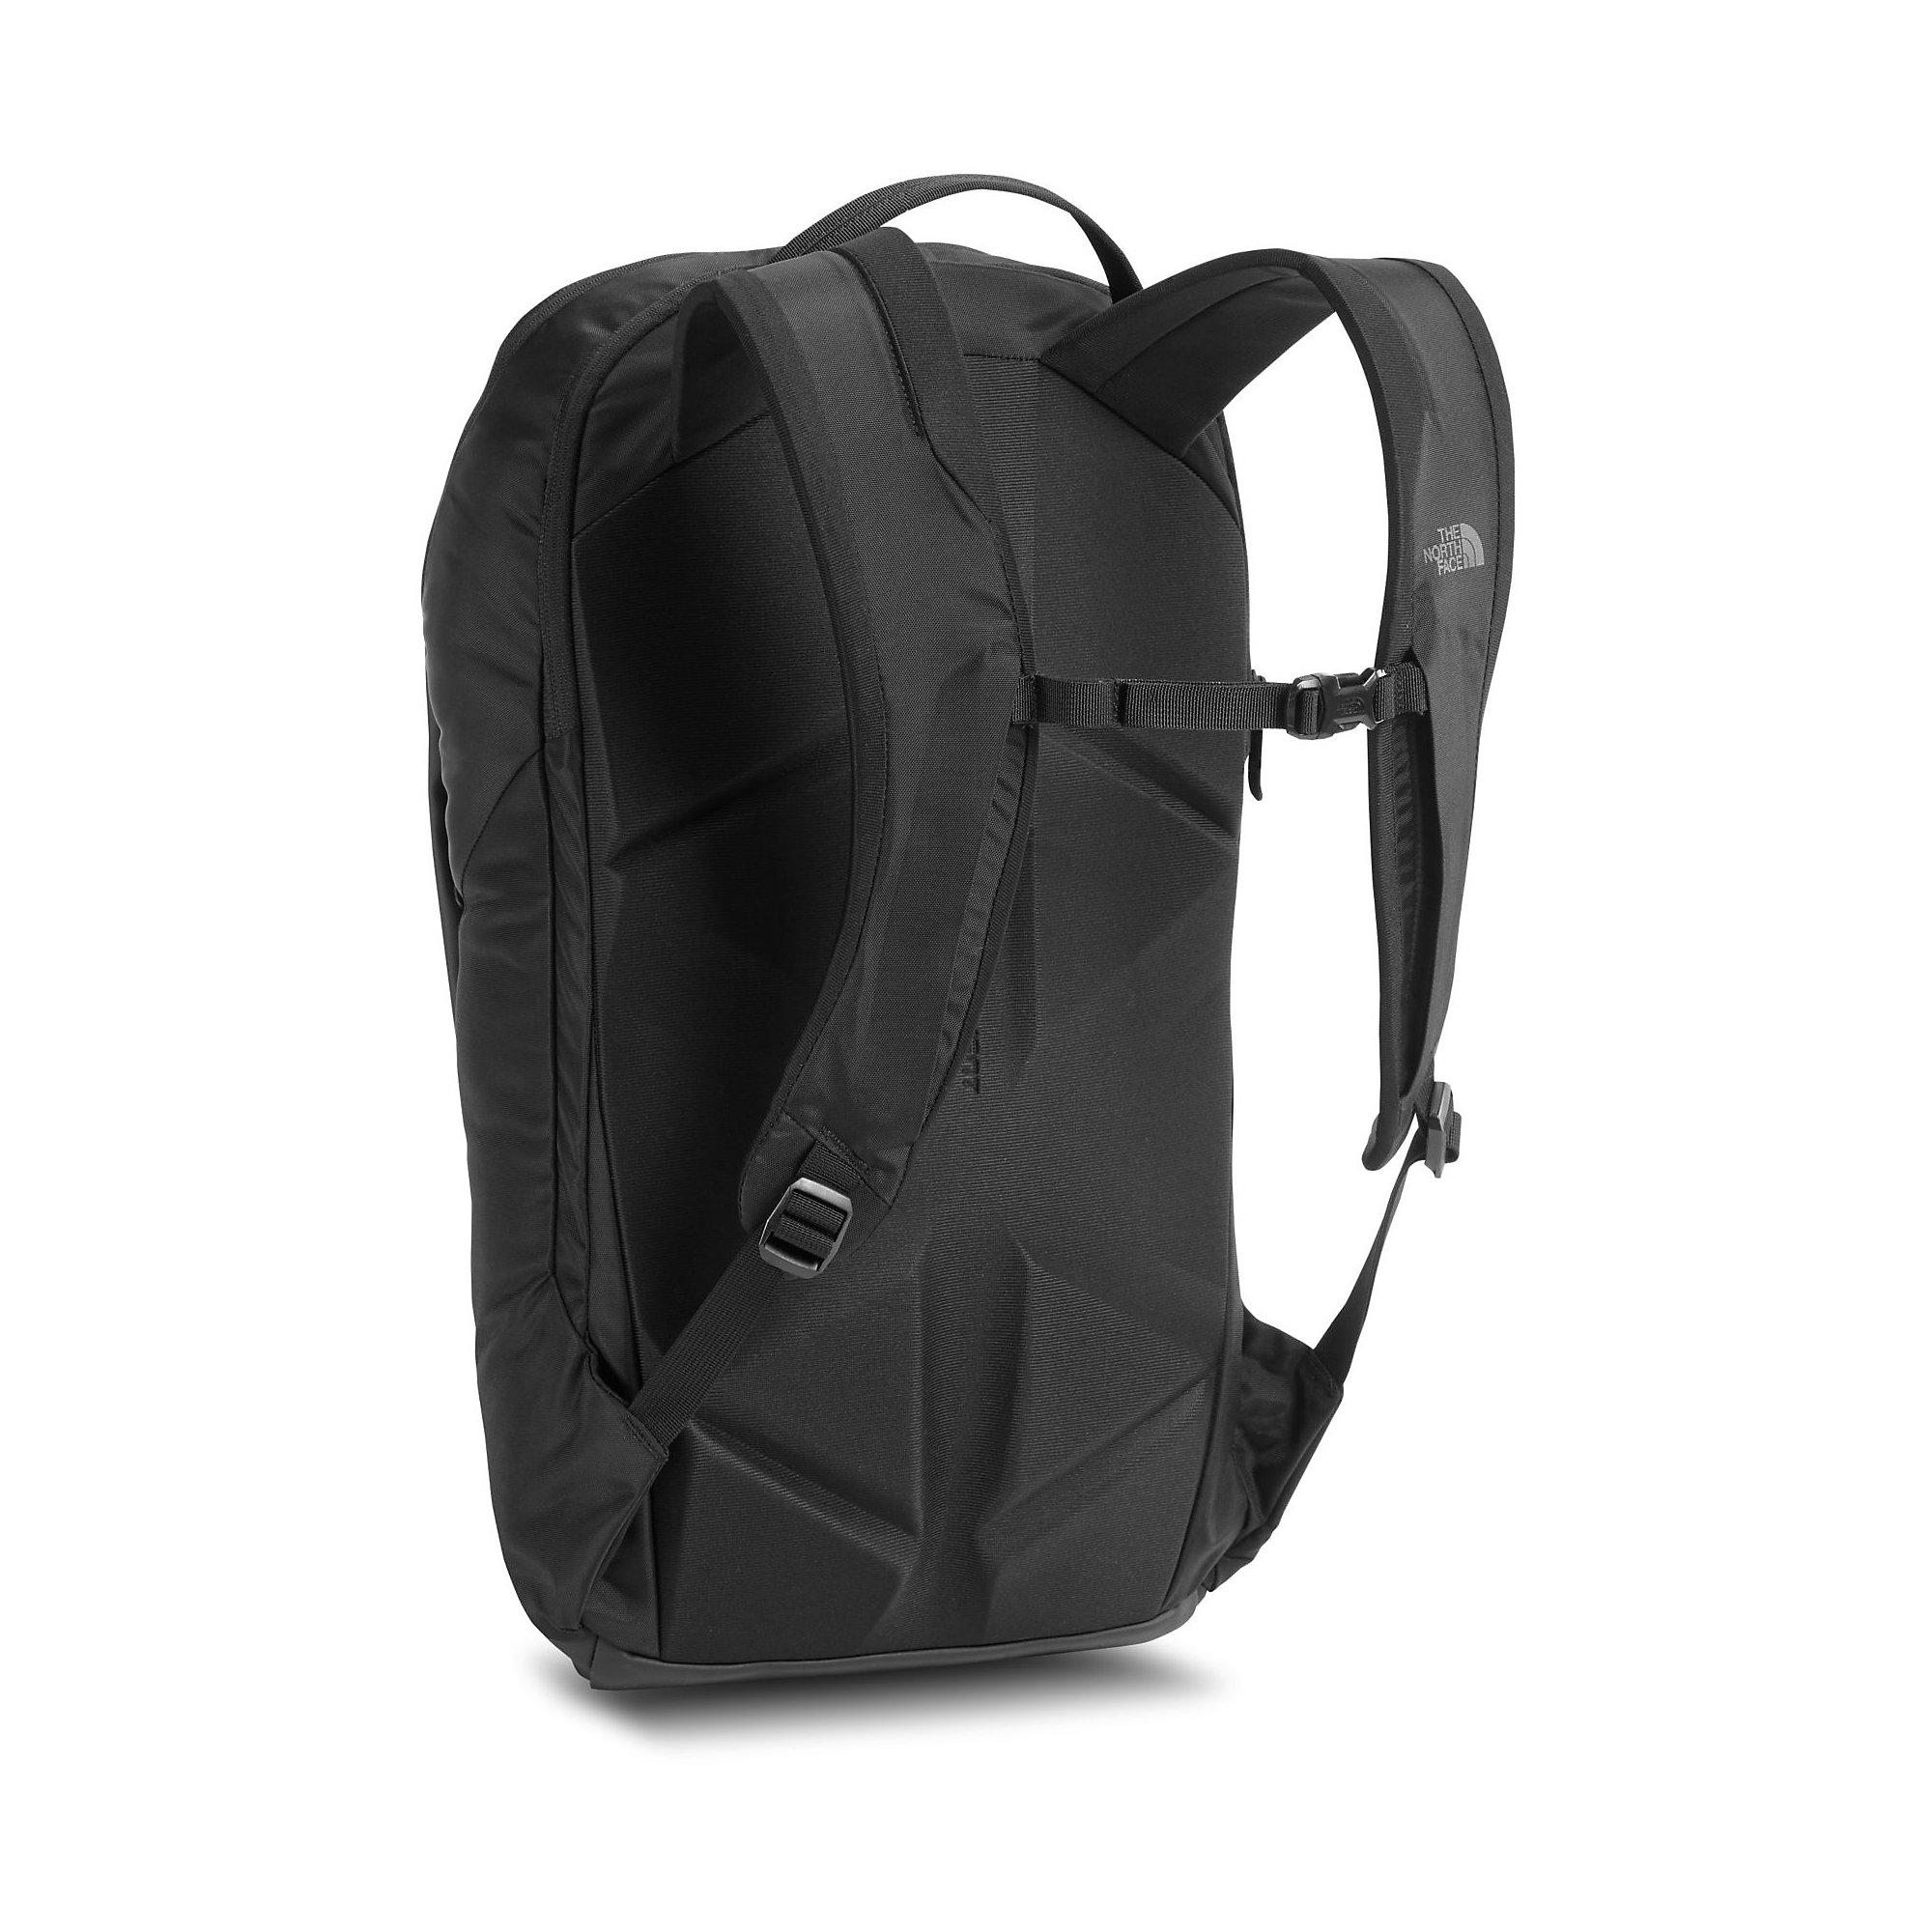 51ac4fe90 The North Face Kabyte Backpack in Black - Lyst